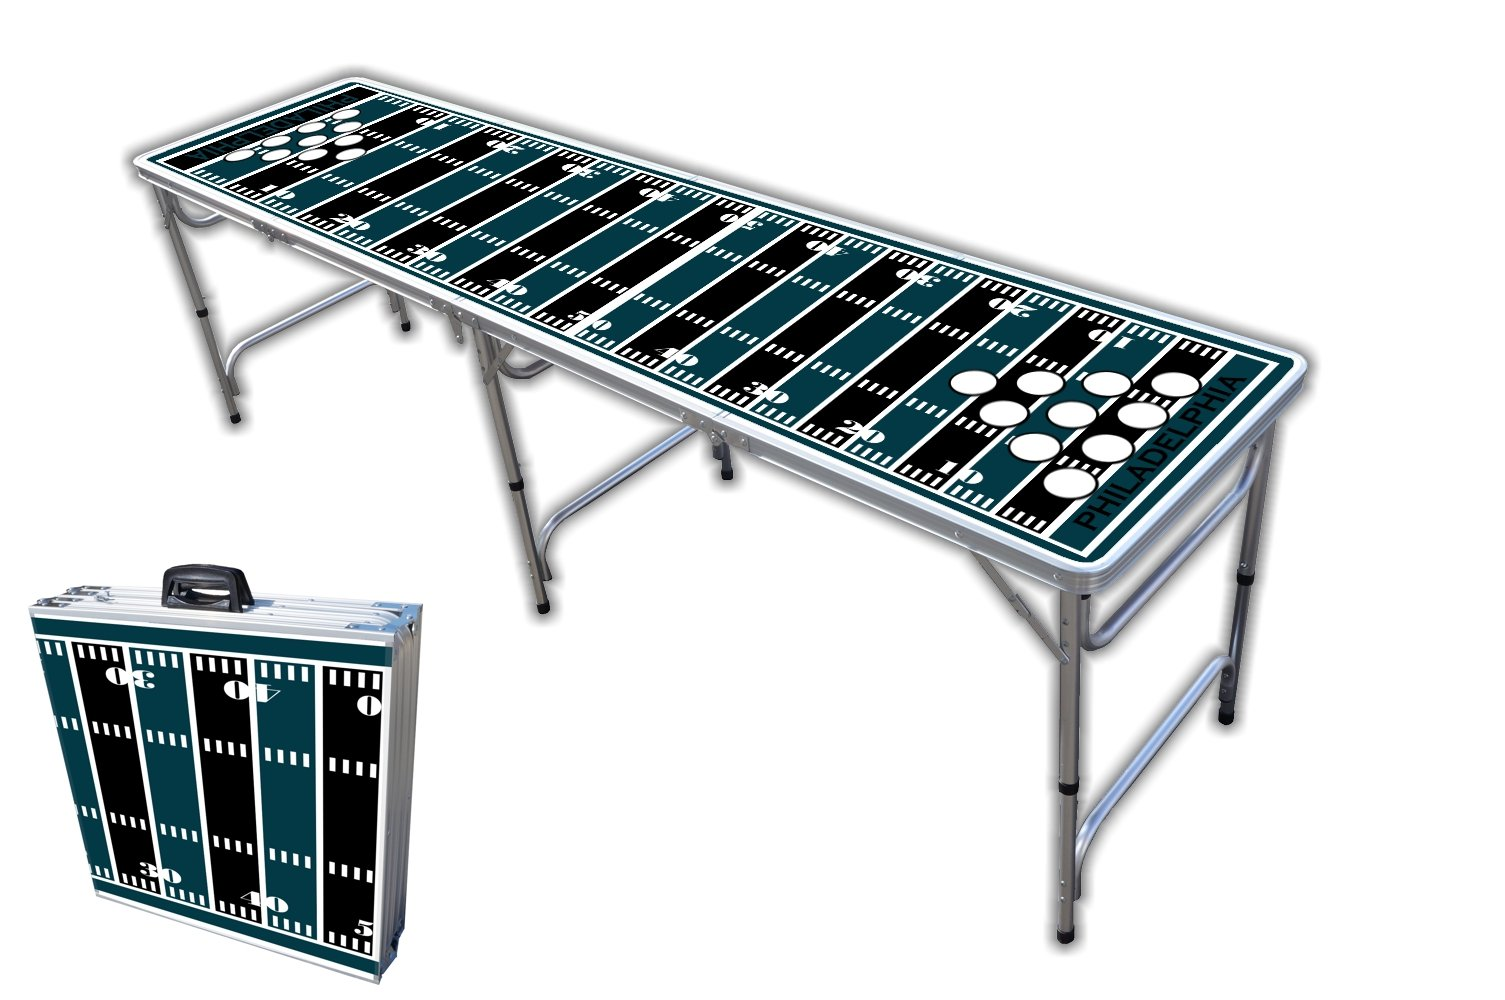 8-Foot Professional Beer Pong Table w/Holes - Philadelphia Football Field Graphic by PartyPongTables.com